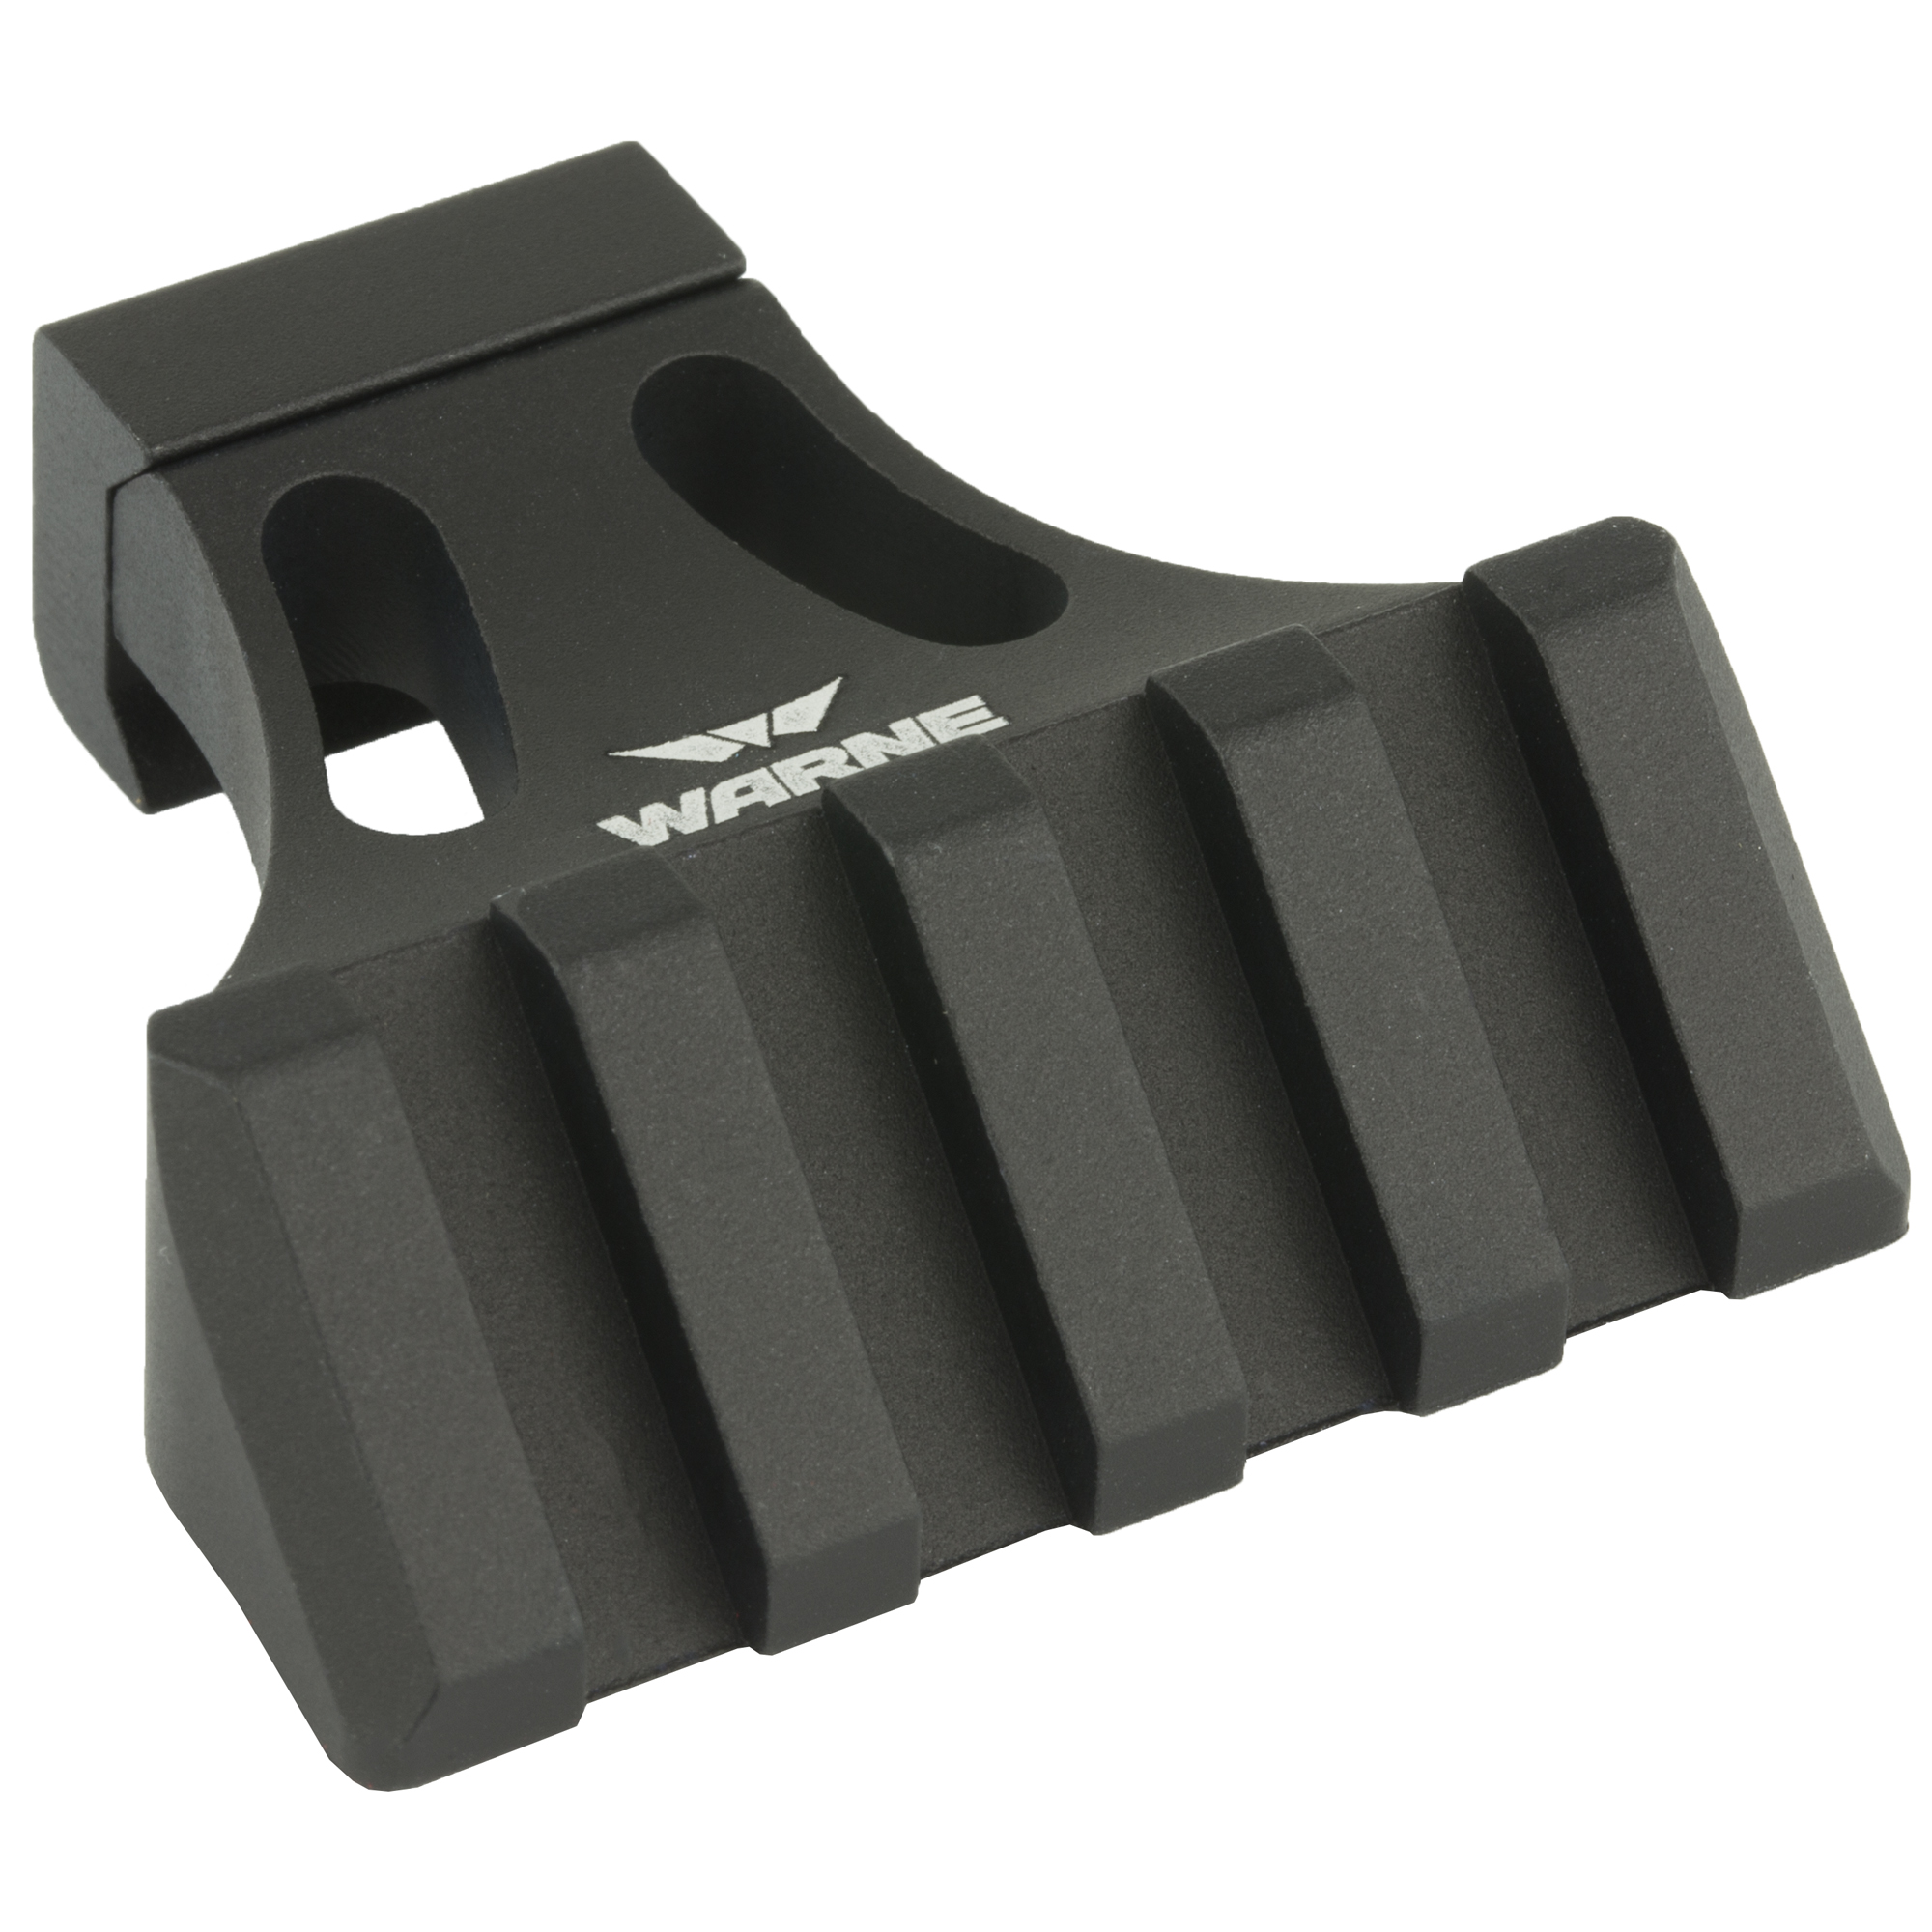 """The A645 Side Mount is designed for Flat Top MSR's and other tactical style firearms. It provides a 45 degree accessory platform that attaches to a Picatinny style rail. The A645 Mount can also be mounted to the rail on the hand guard to allow your back-up sight to co-witness with the sight on your R.A.M.P. Mount. This is a simple installation and requires no modification to your firearm. To add to its already sleek design"""" the A645 Side Mount has been redesigned to incorporate two cut out sections to achieve an ultra-lightweight feel. The side rails have also been updated with one more additional cross slot to increase the mounting capabilities to 4 slots total."""